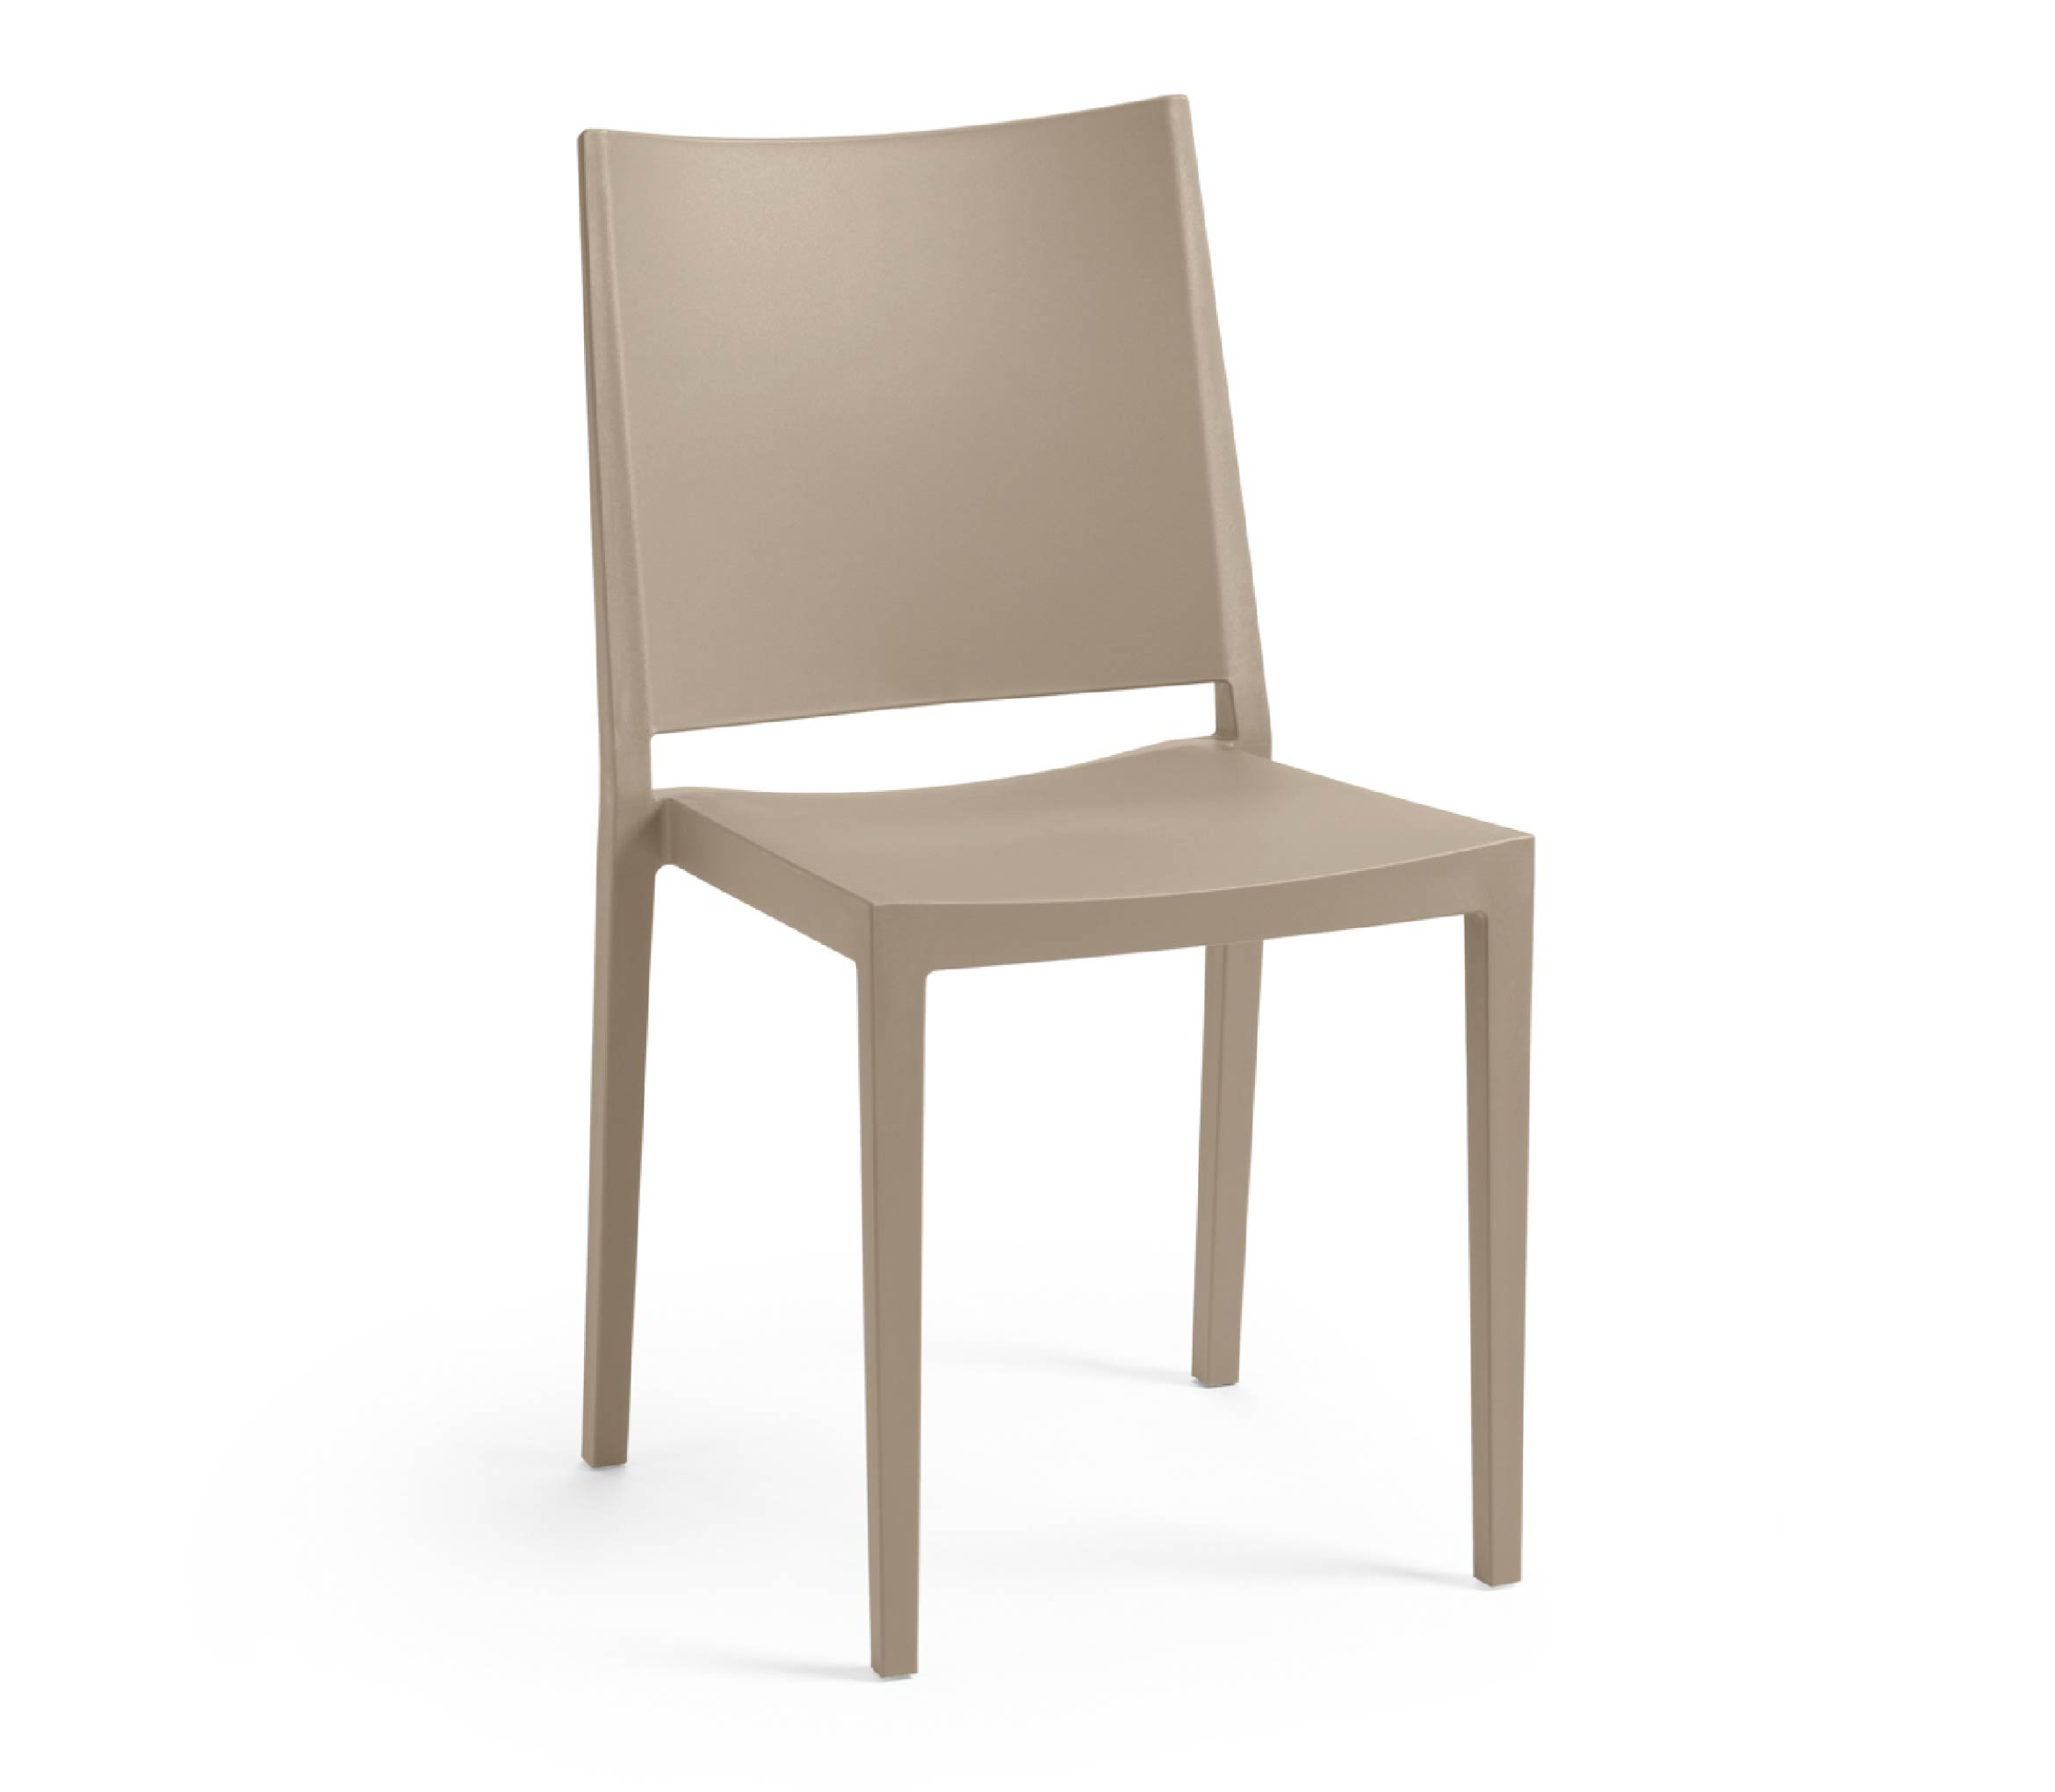 4 - TENSAI_FURNITURE_MOSK_CHAIR_TAUPE_COLOR_PLASTIC_white_background - _802_001